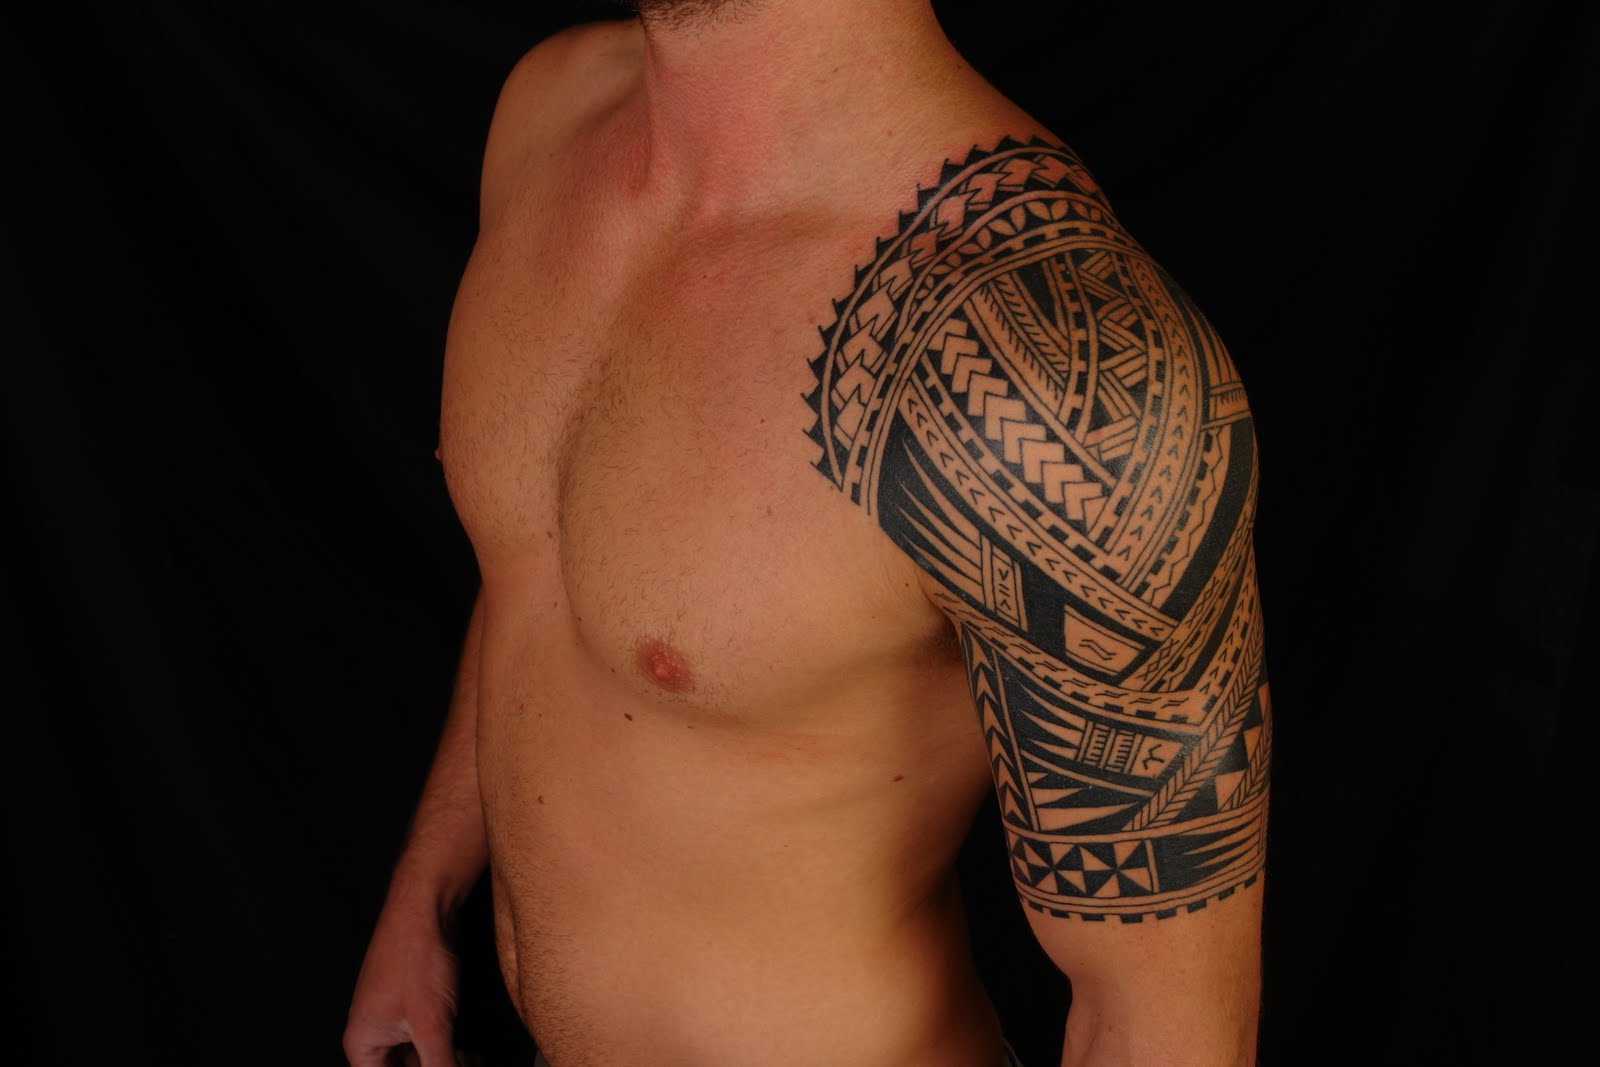 tattoo samoan tribal sleeves Tattoos  You  Tattoos Meaning For Ideas Samoan Designs, and